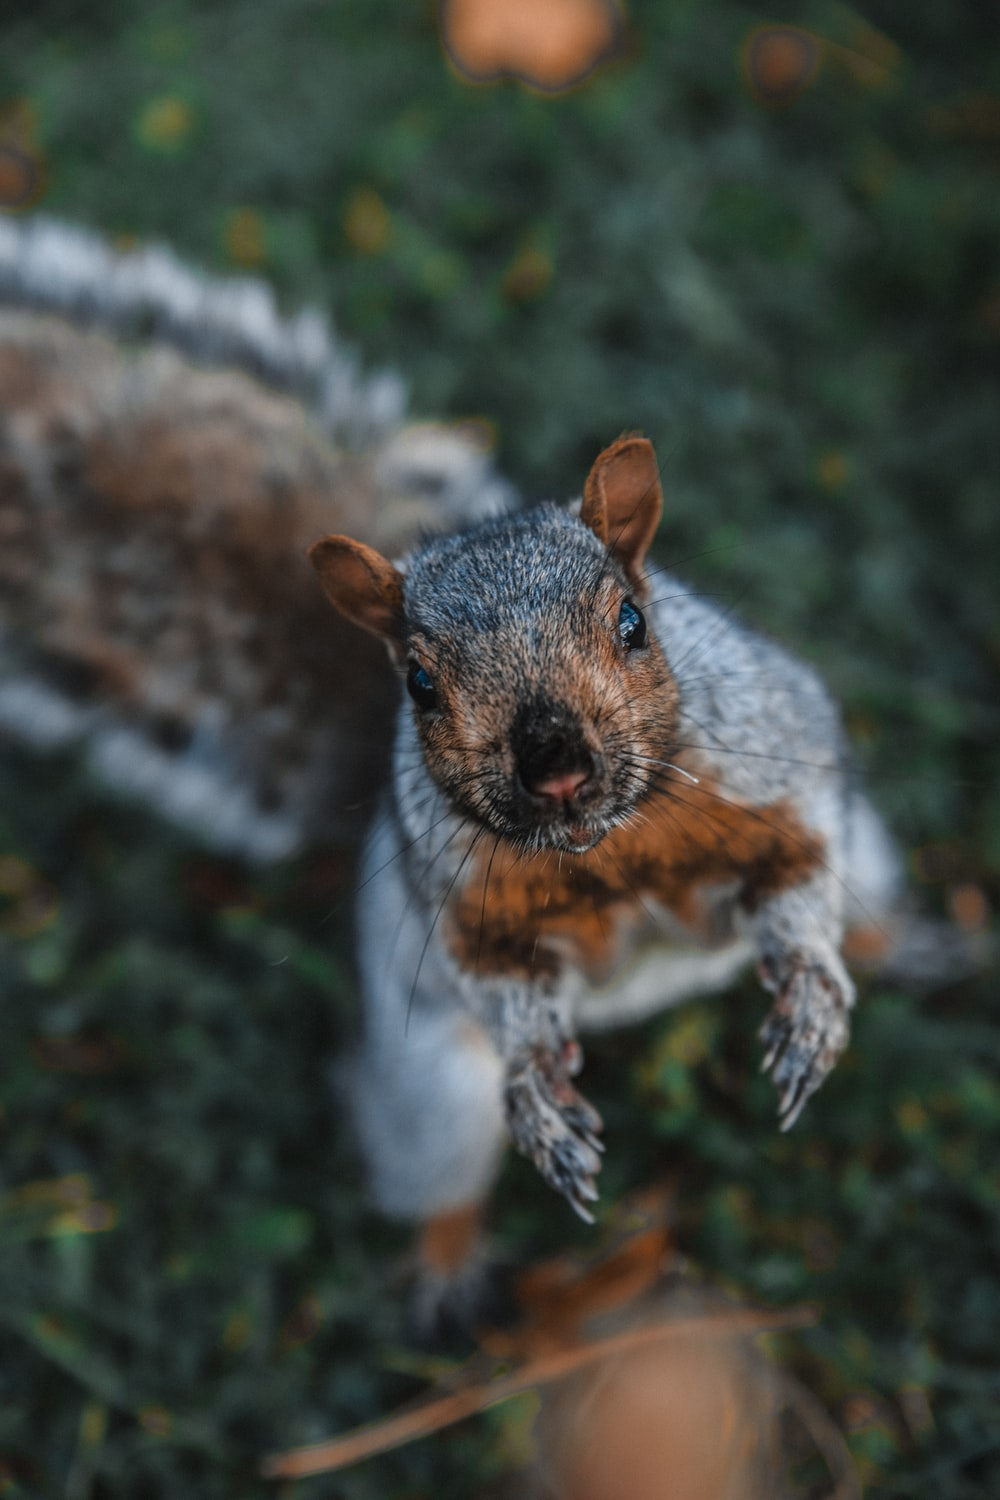 brown and gray squirrel